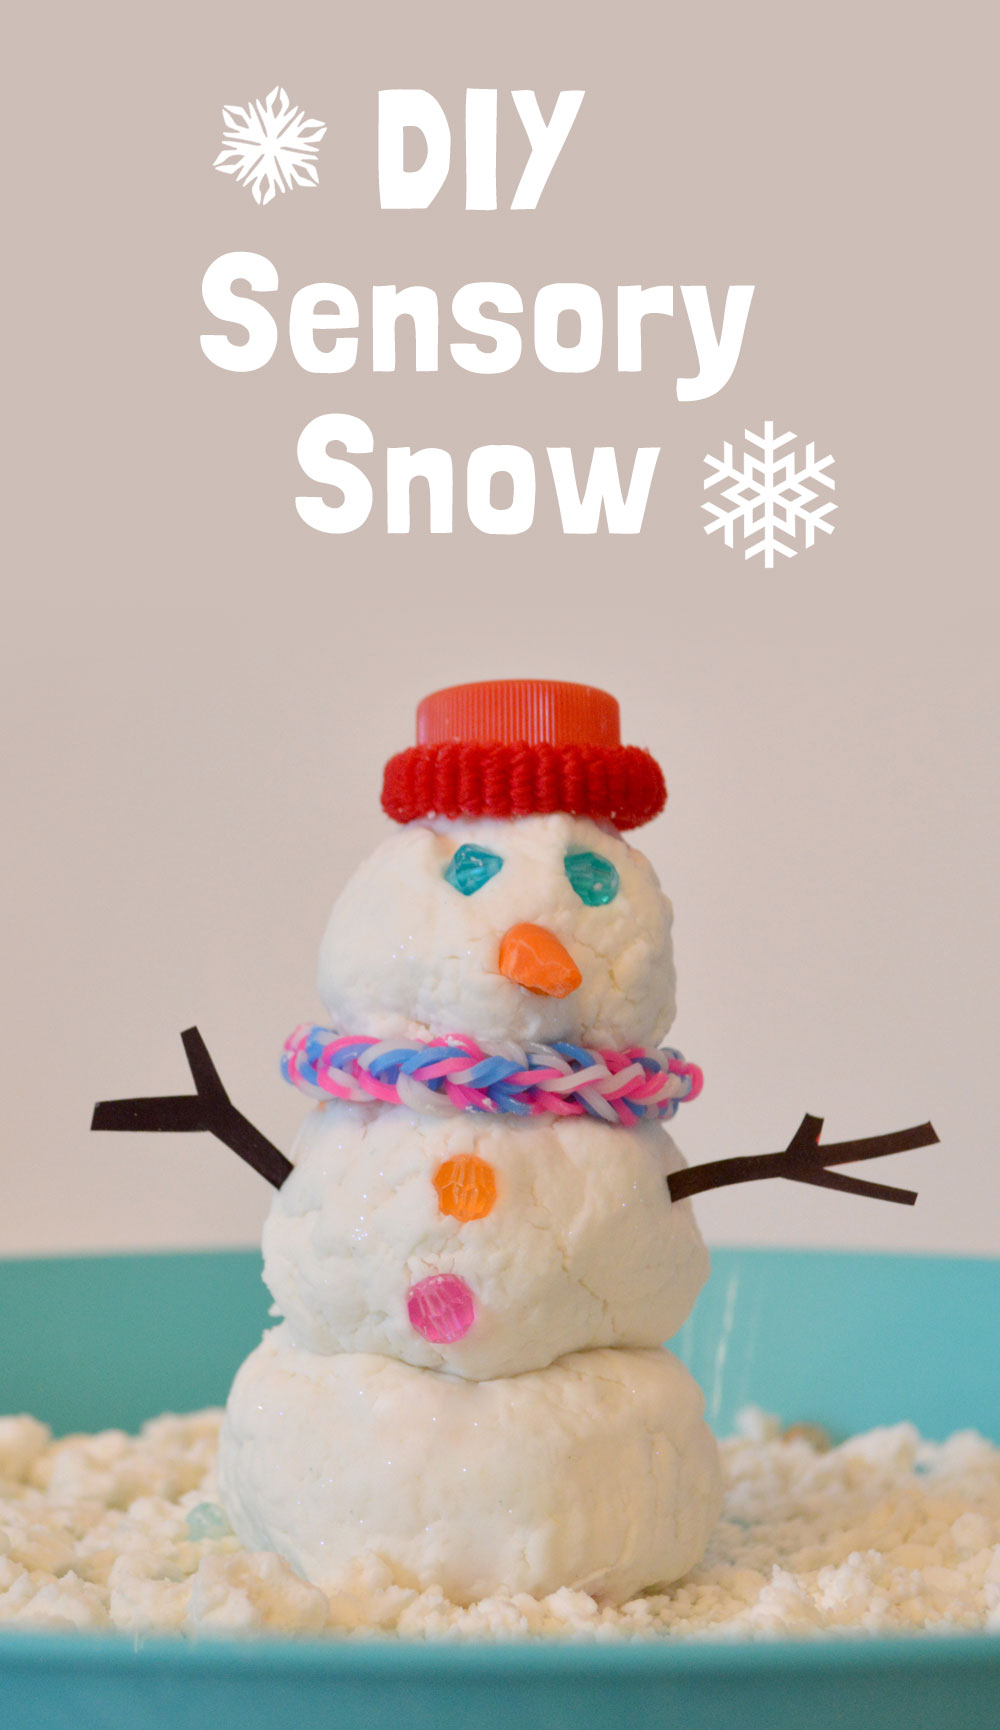 DIY Sensory Snow kids activity - Mommy Scene